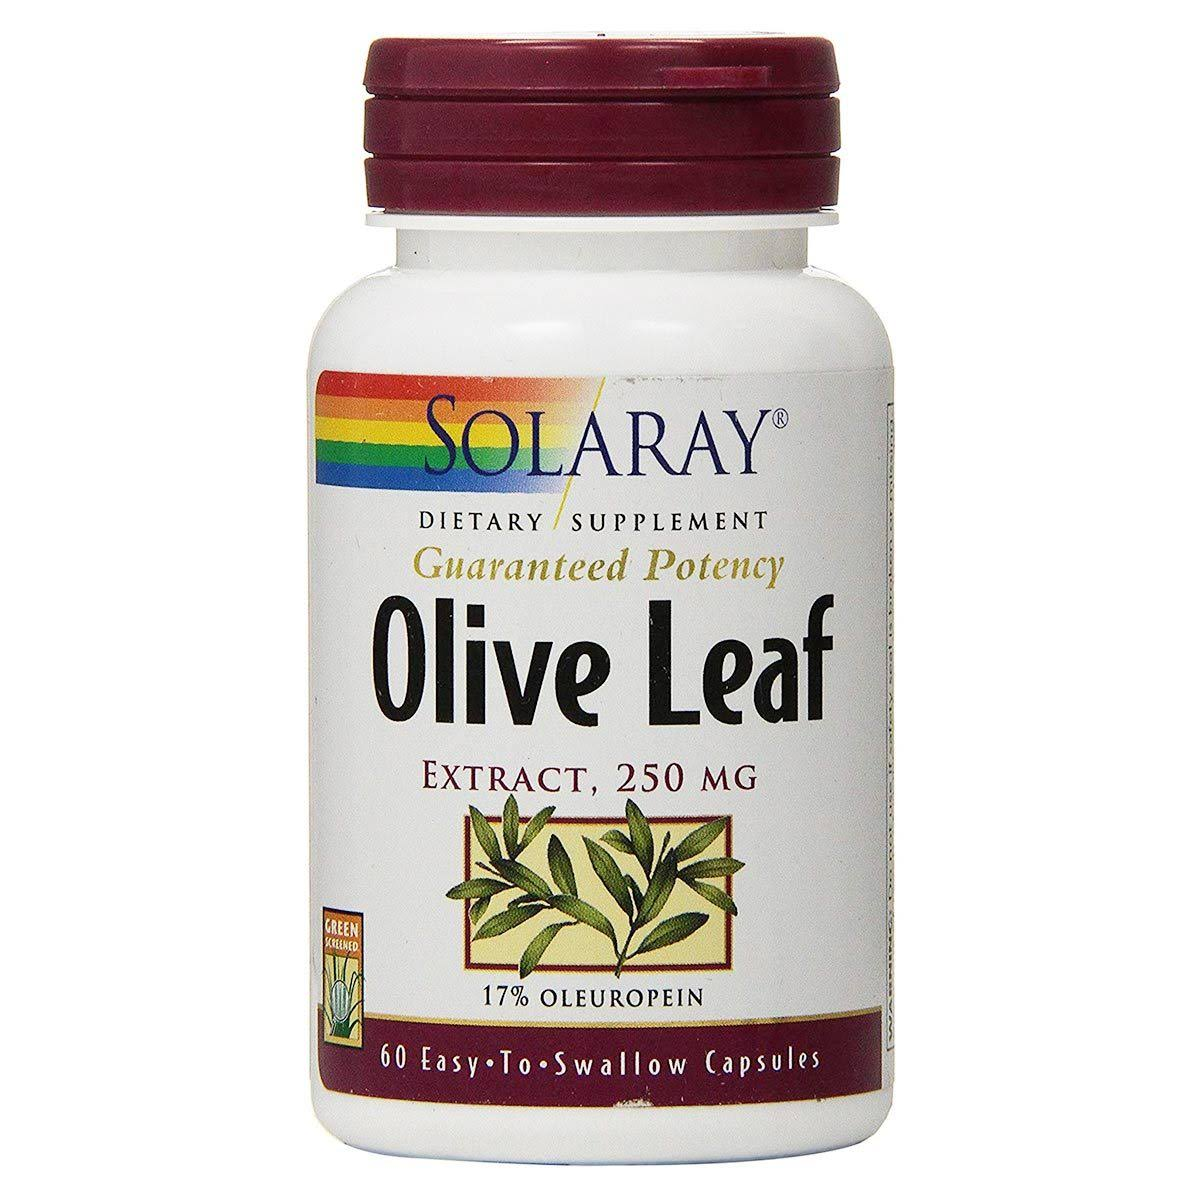 Solaray Olive Leaf Extract Supplement - 250mg, 60ct